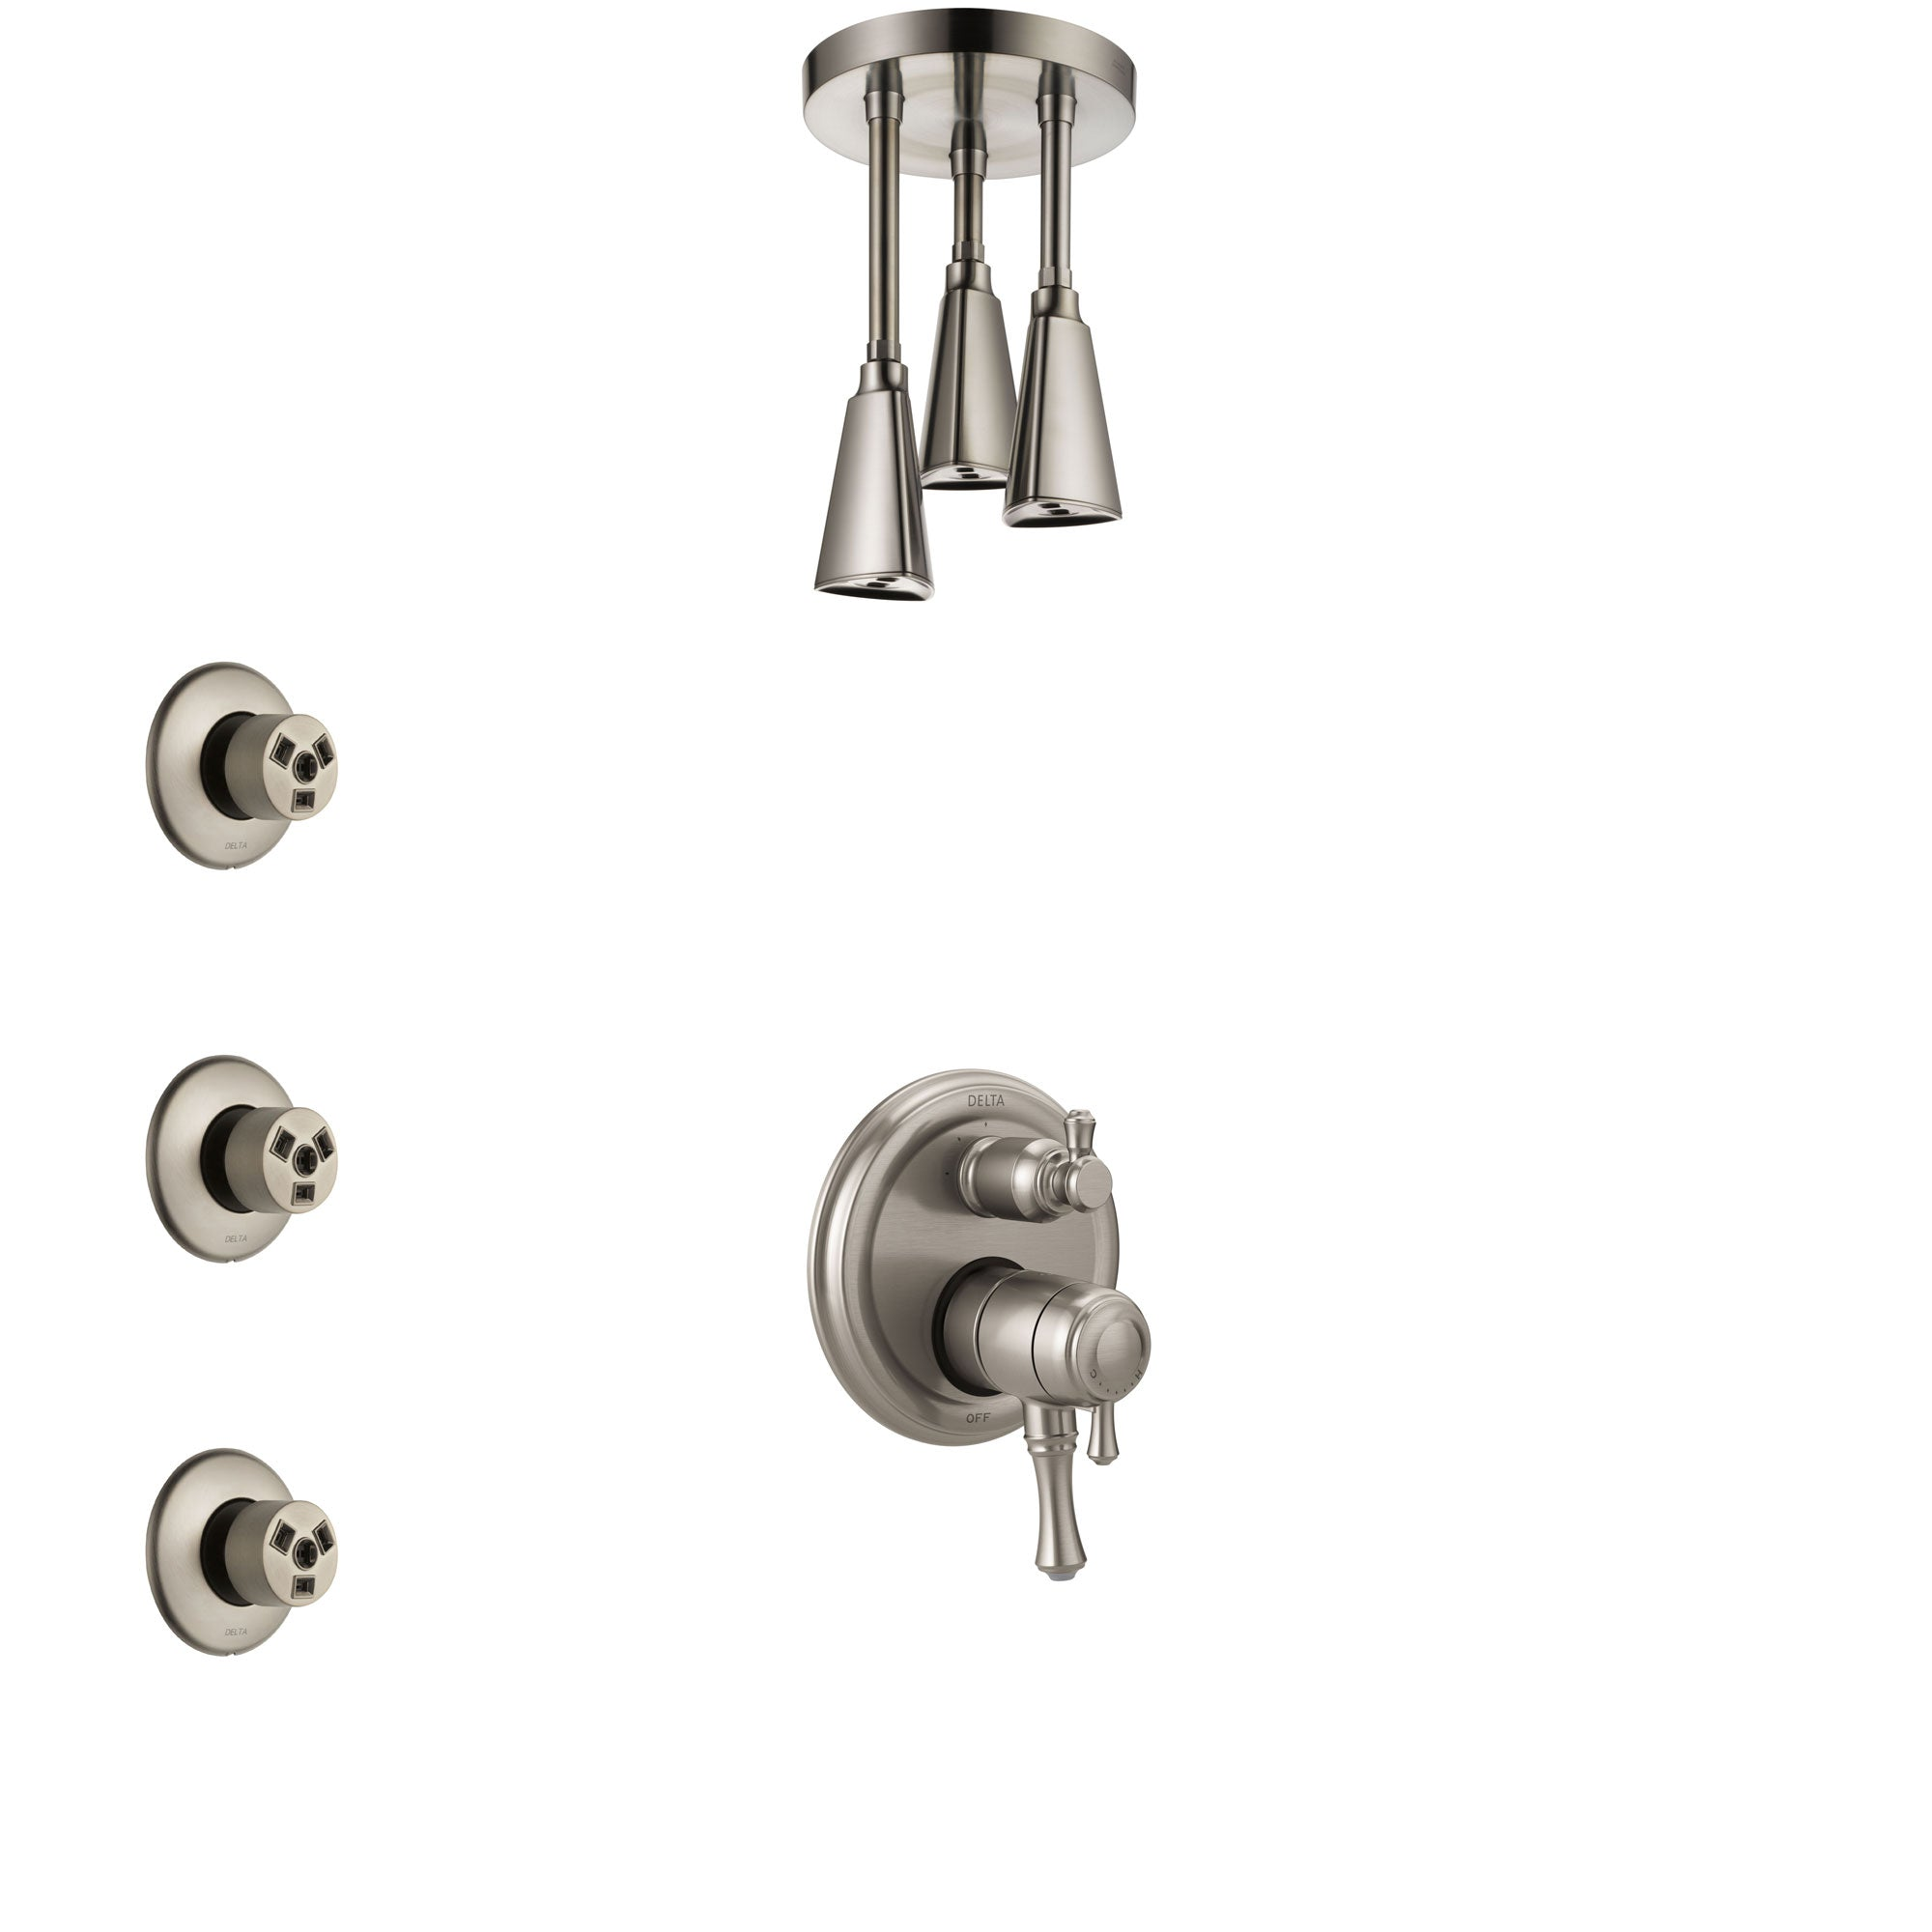 Delta Cassidy Dual Control Handle Stainless Steel Finish Shower System, Integrated Diverter, Ceiling Mount Showerhead, and 3 Body Sprays SS27897SS10